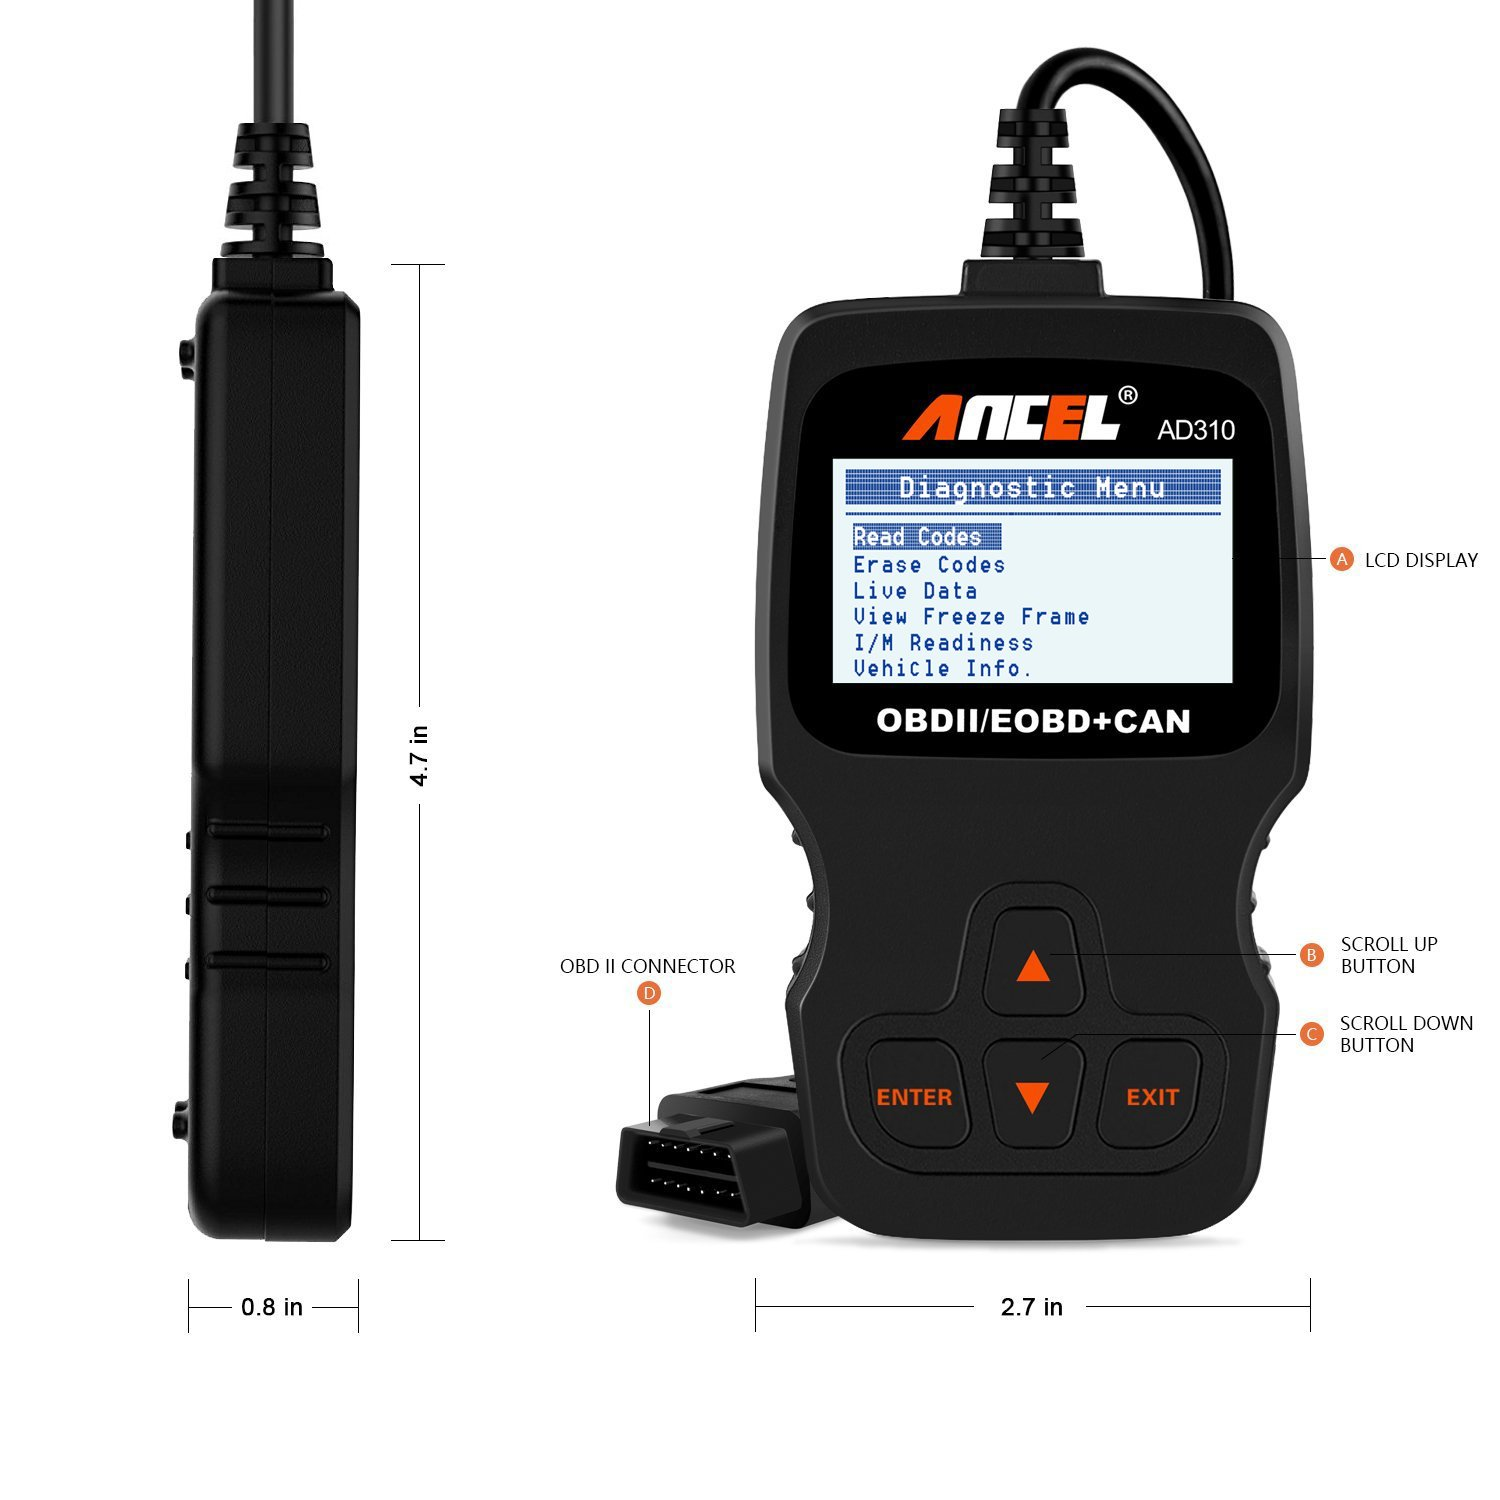 Ancel AD310 obd2 scanner diagnostic scanner